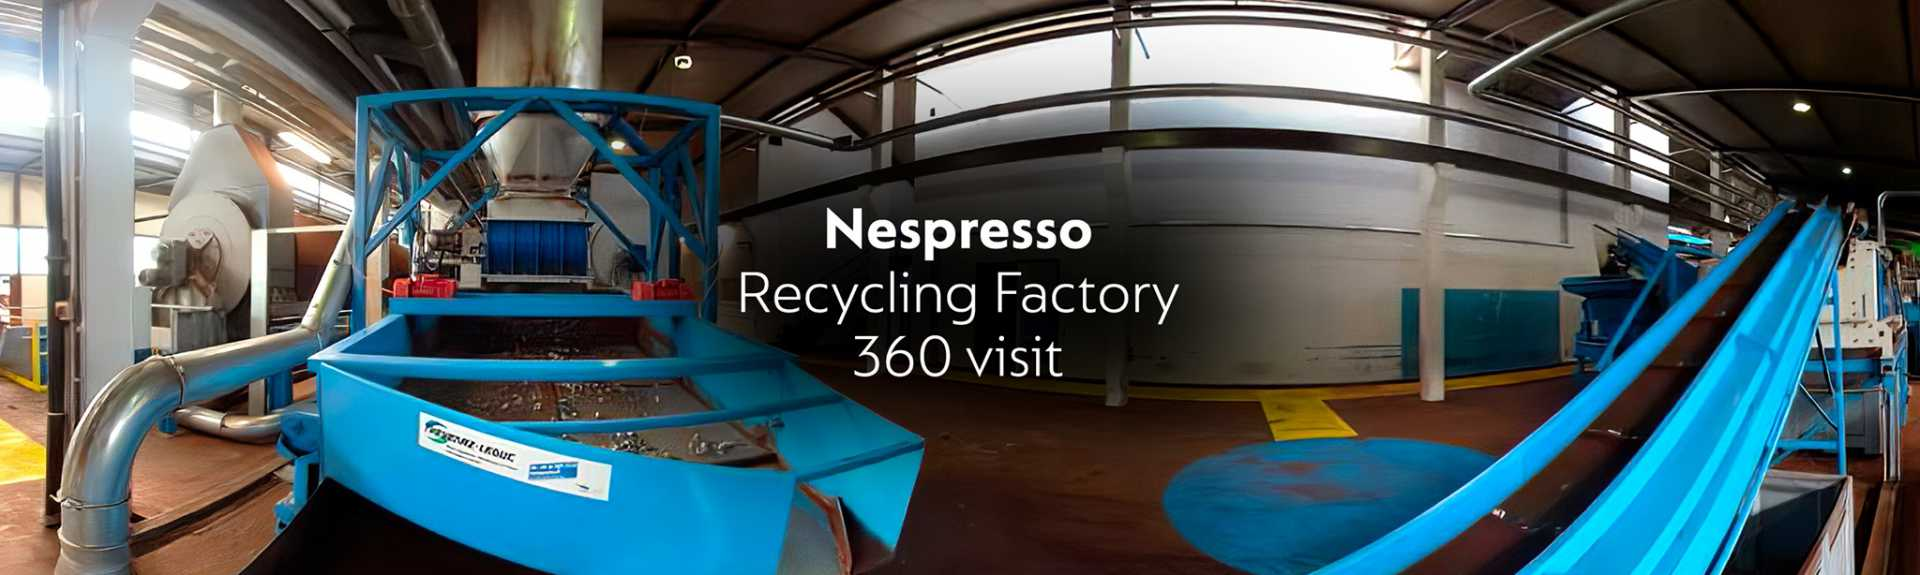 Nespresso Recycling Factory 360 visit